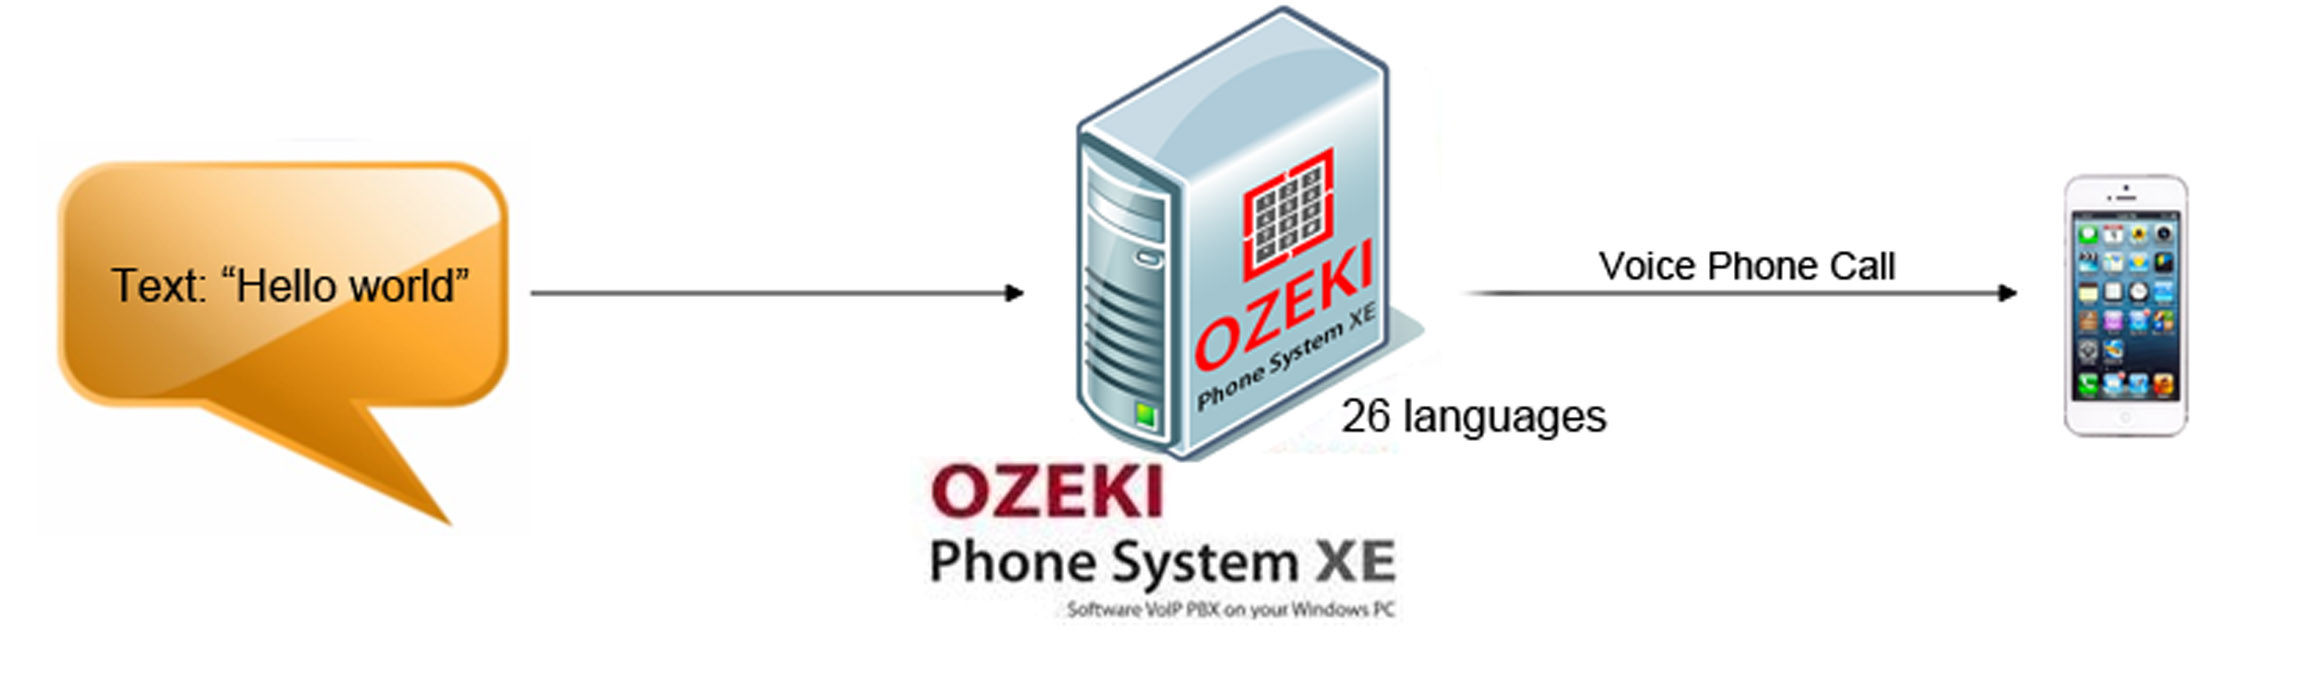 Ozeki VoIP PBX - How to select the language of text-to-speech feature